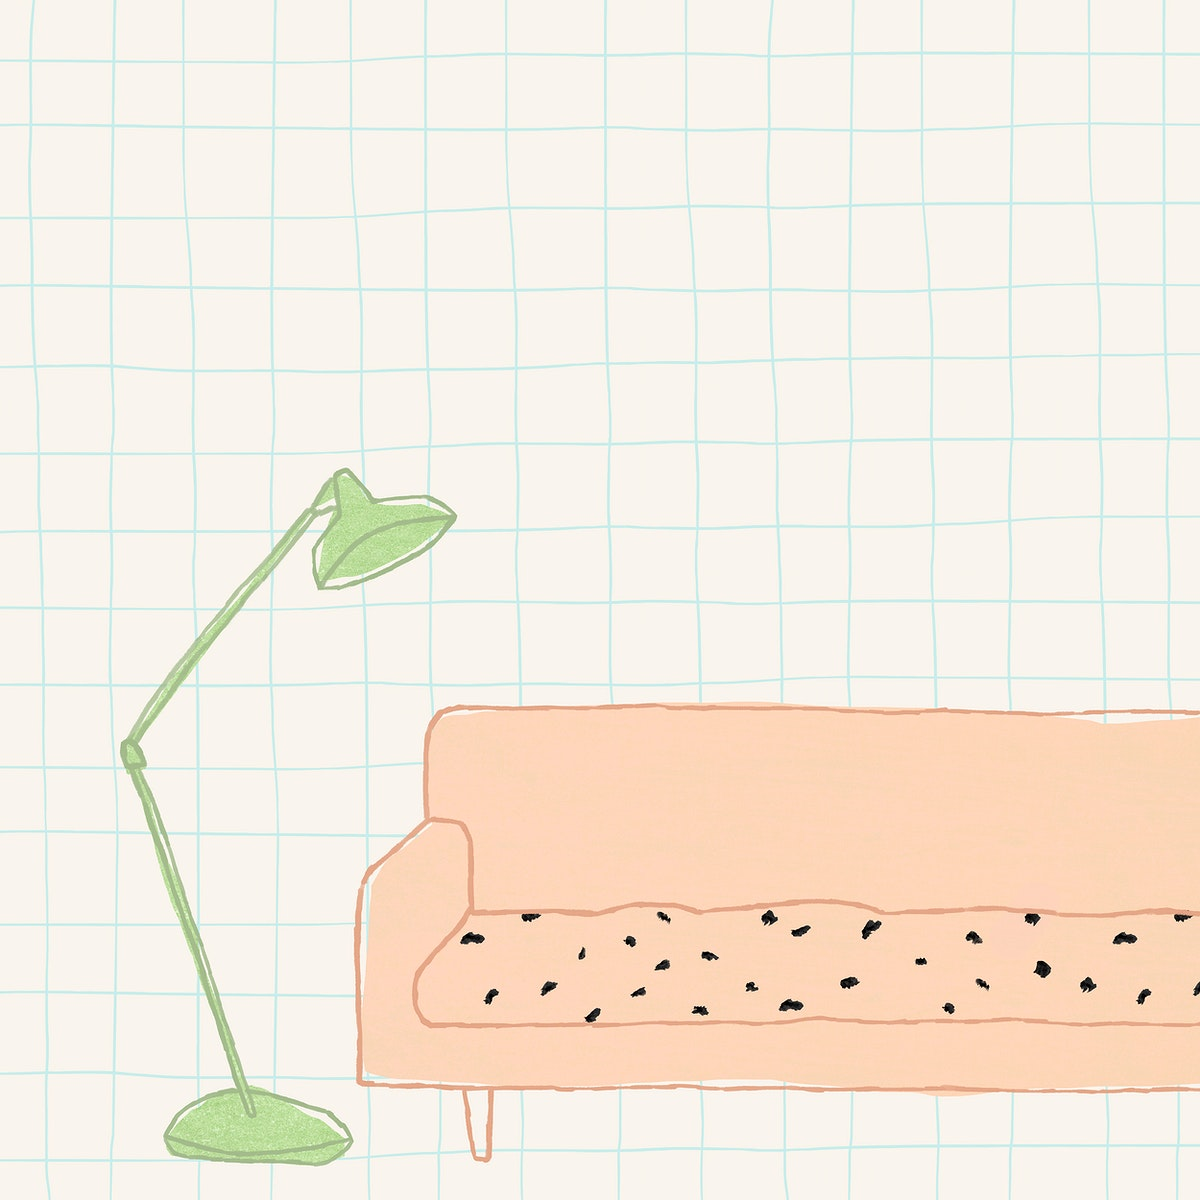 Sofa and lamp background cute home interior illustration for social media post